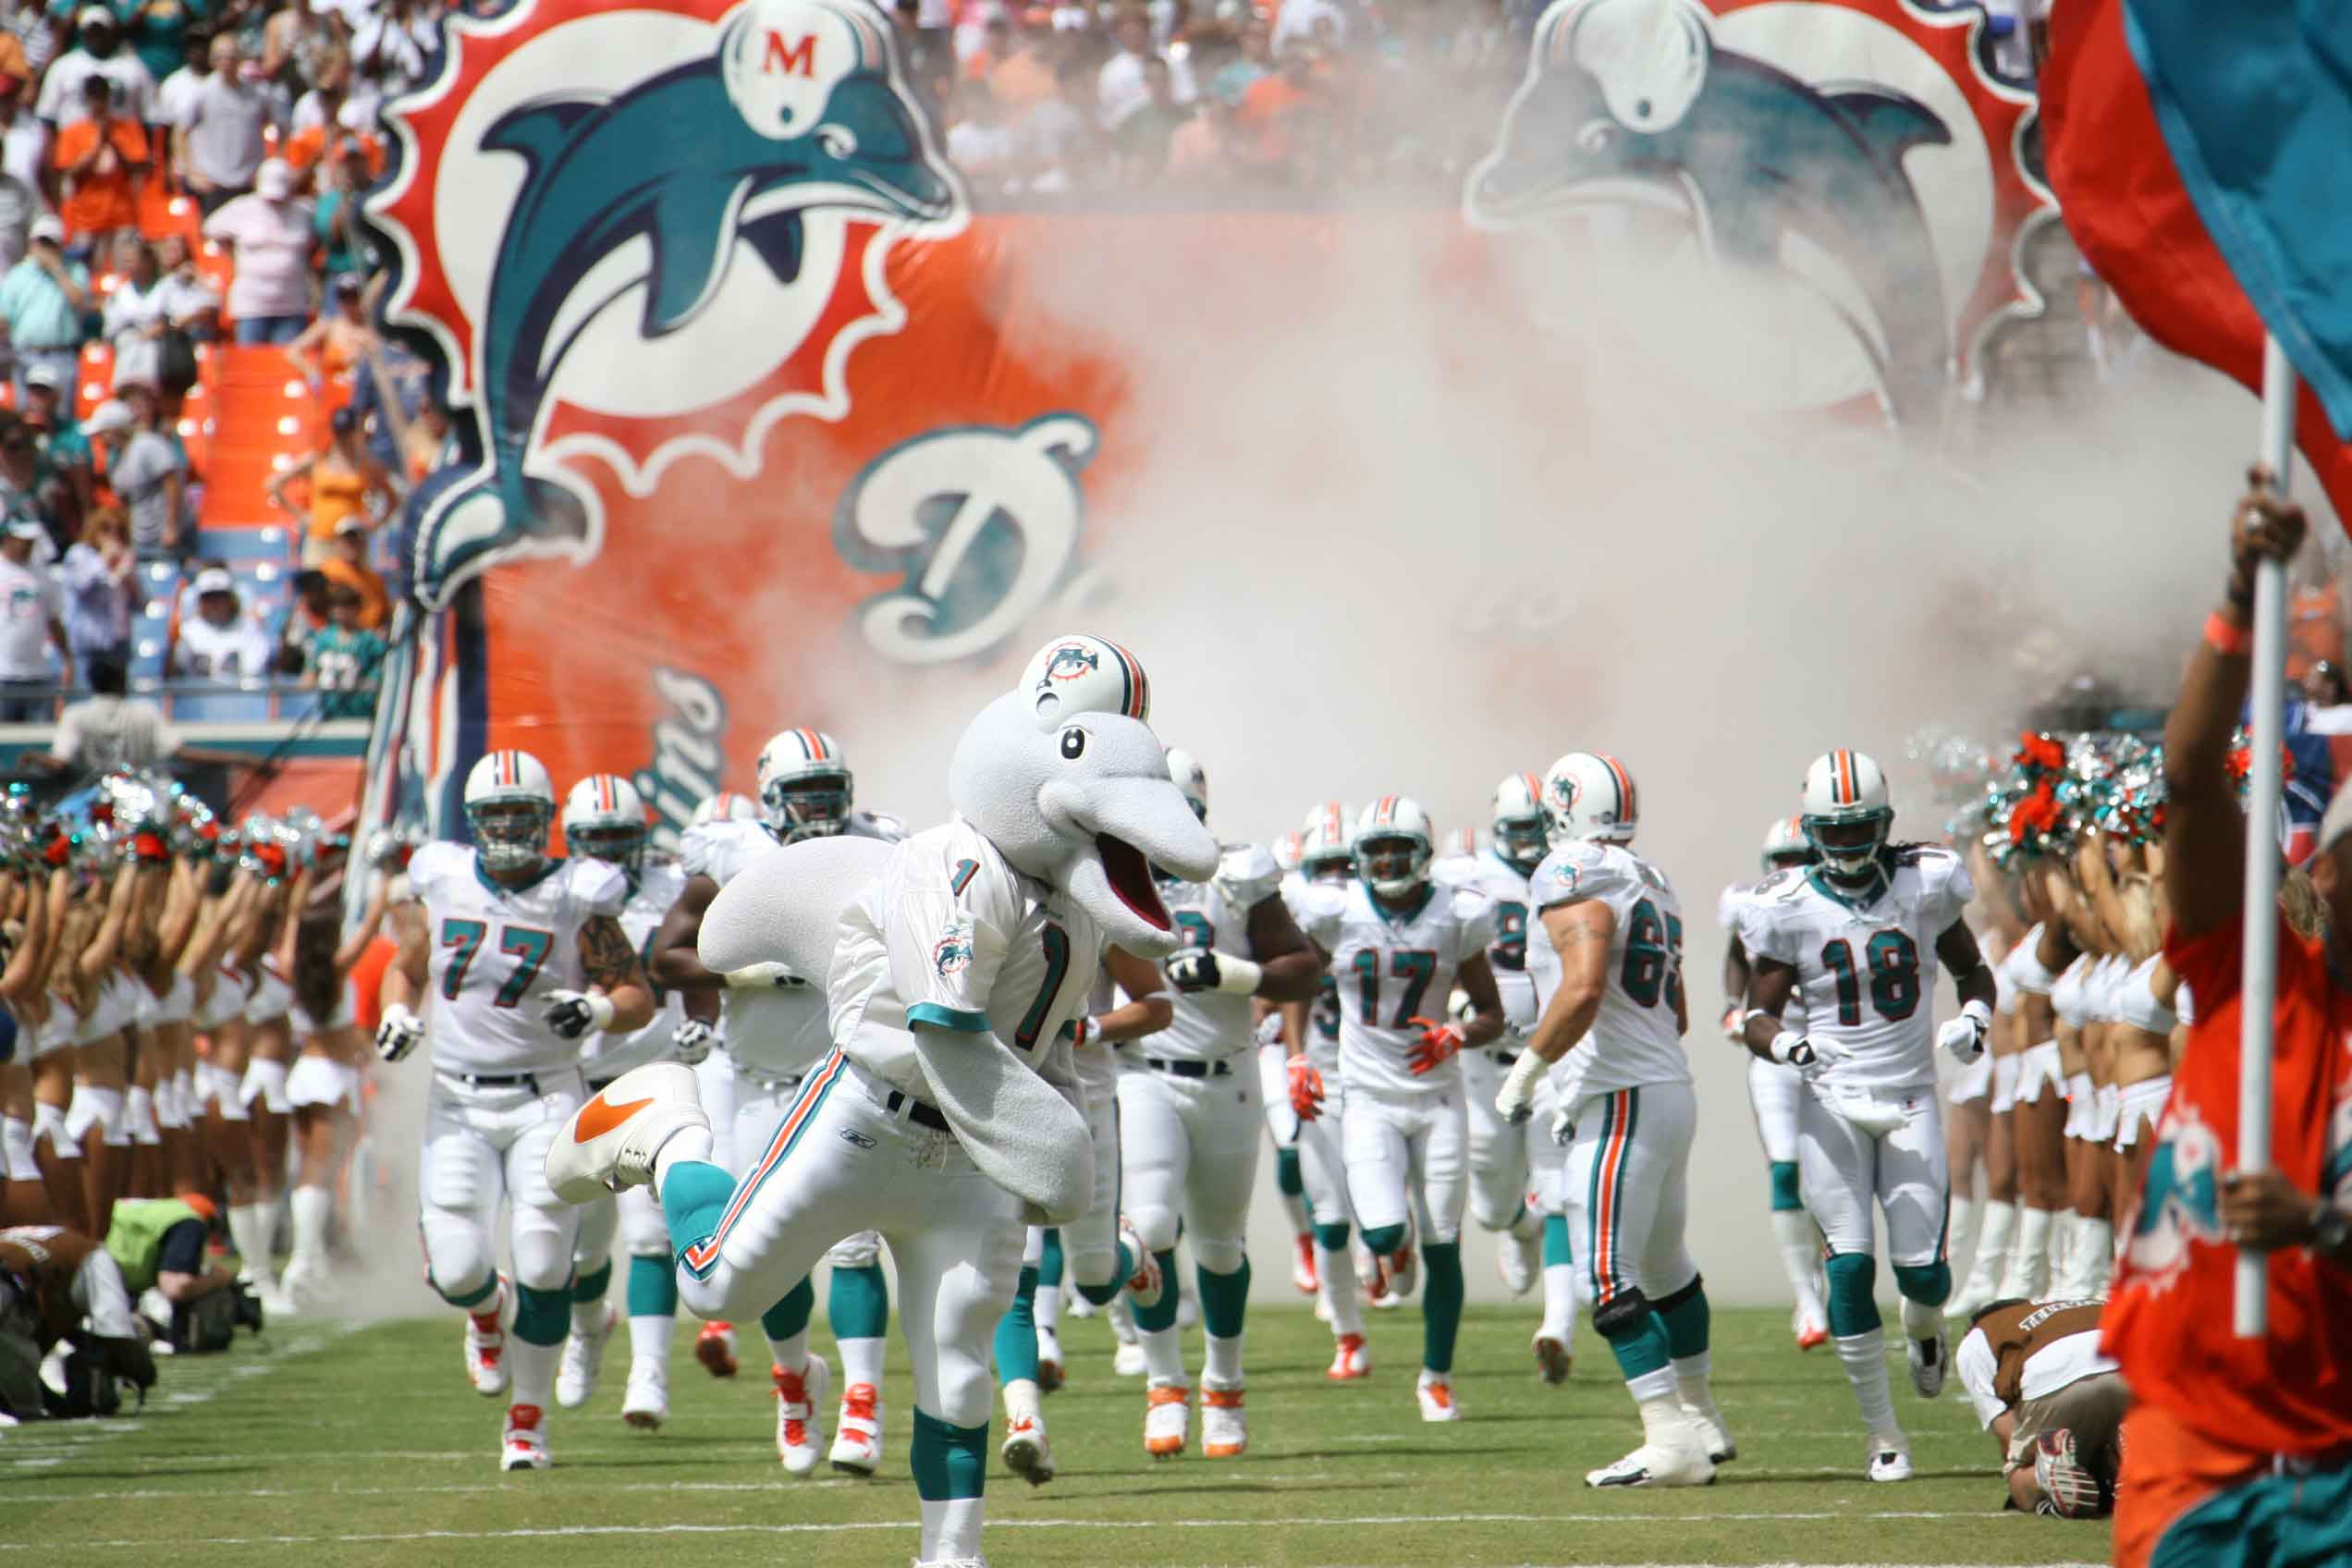 miami dolphins - photo #34